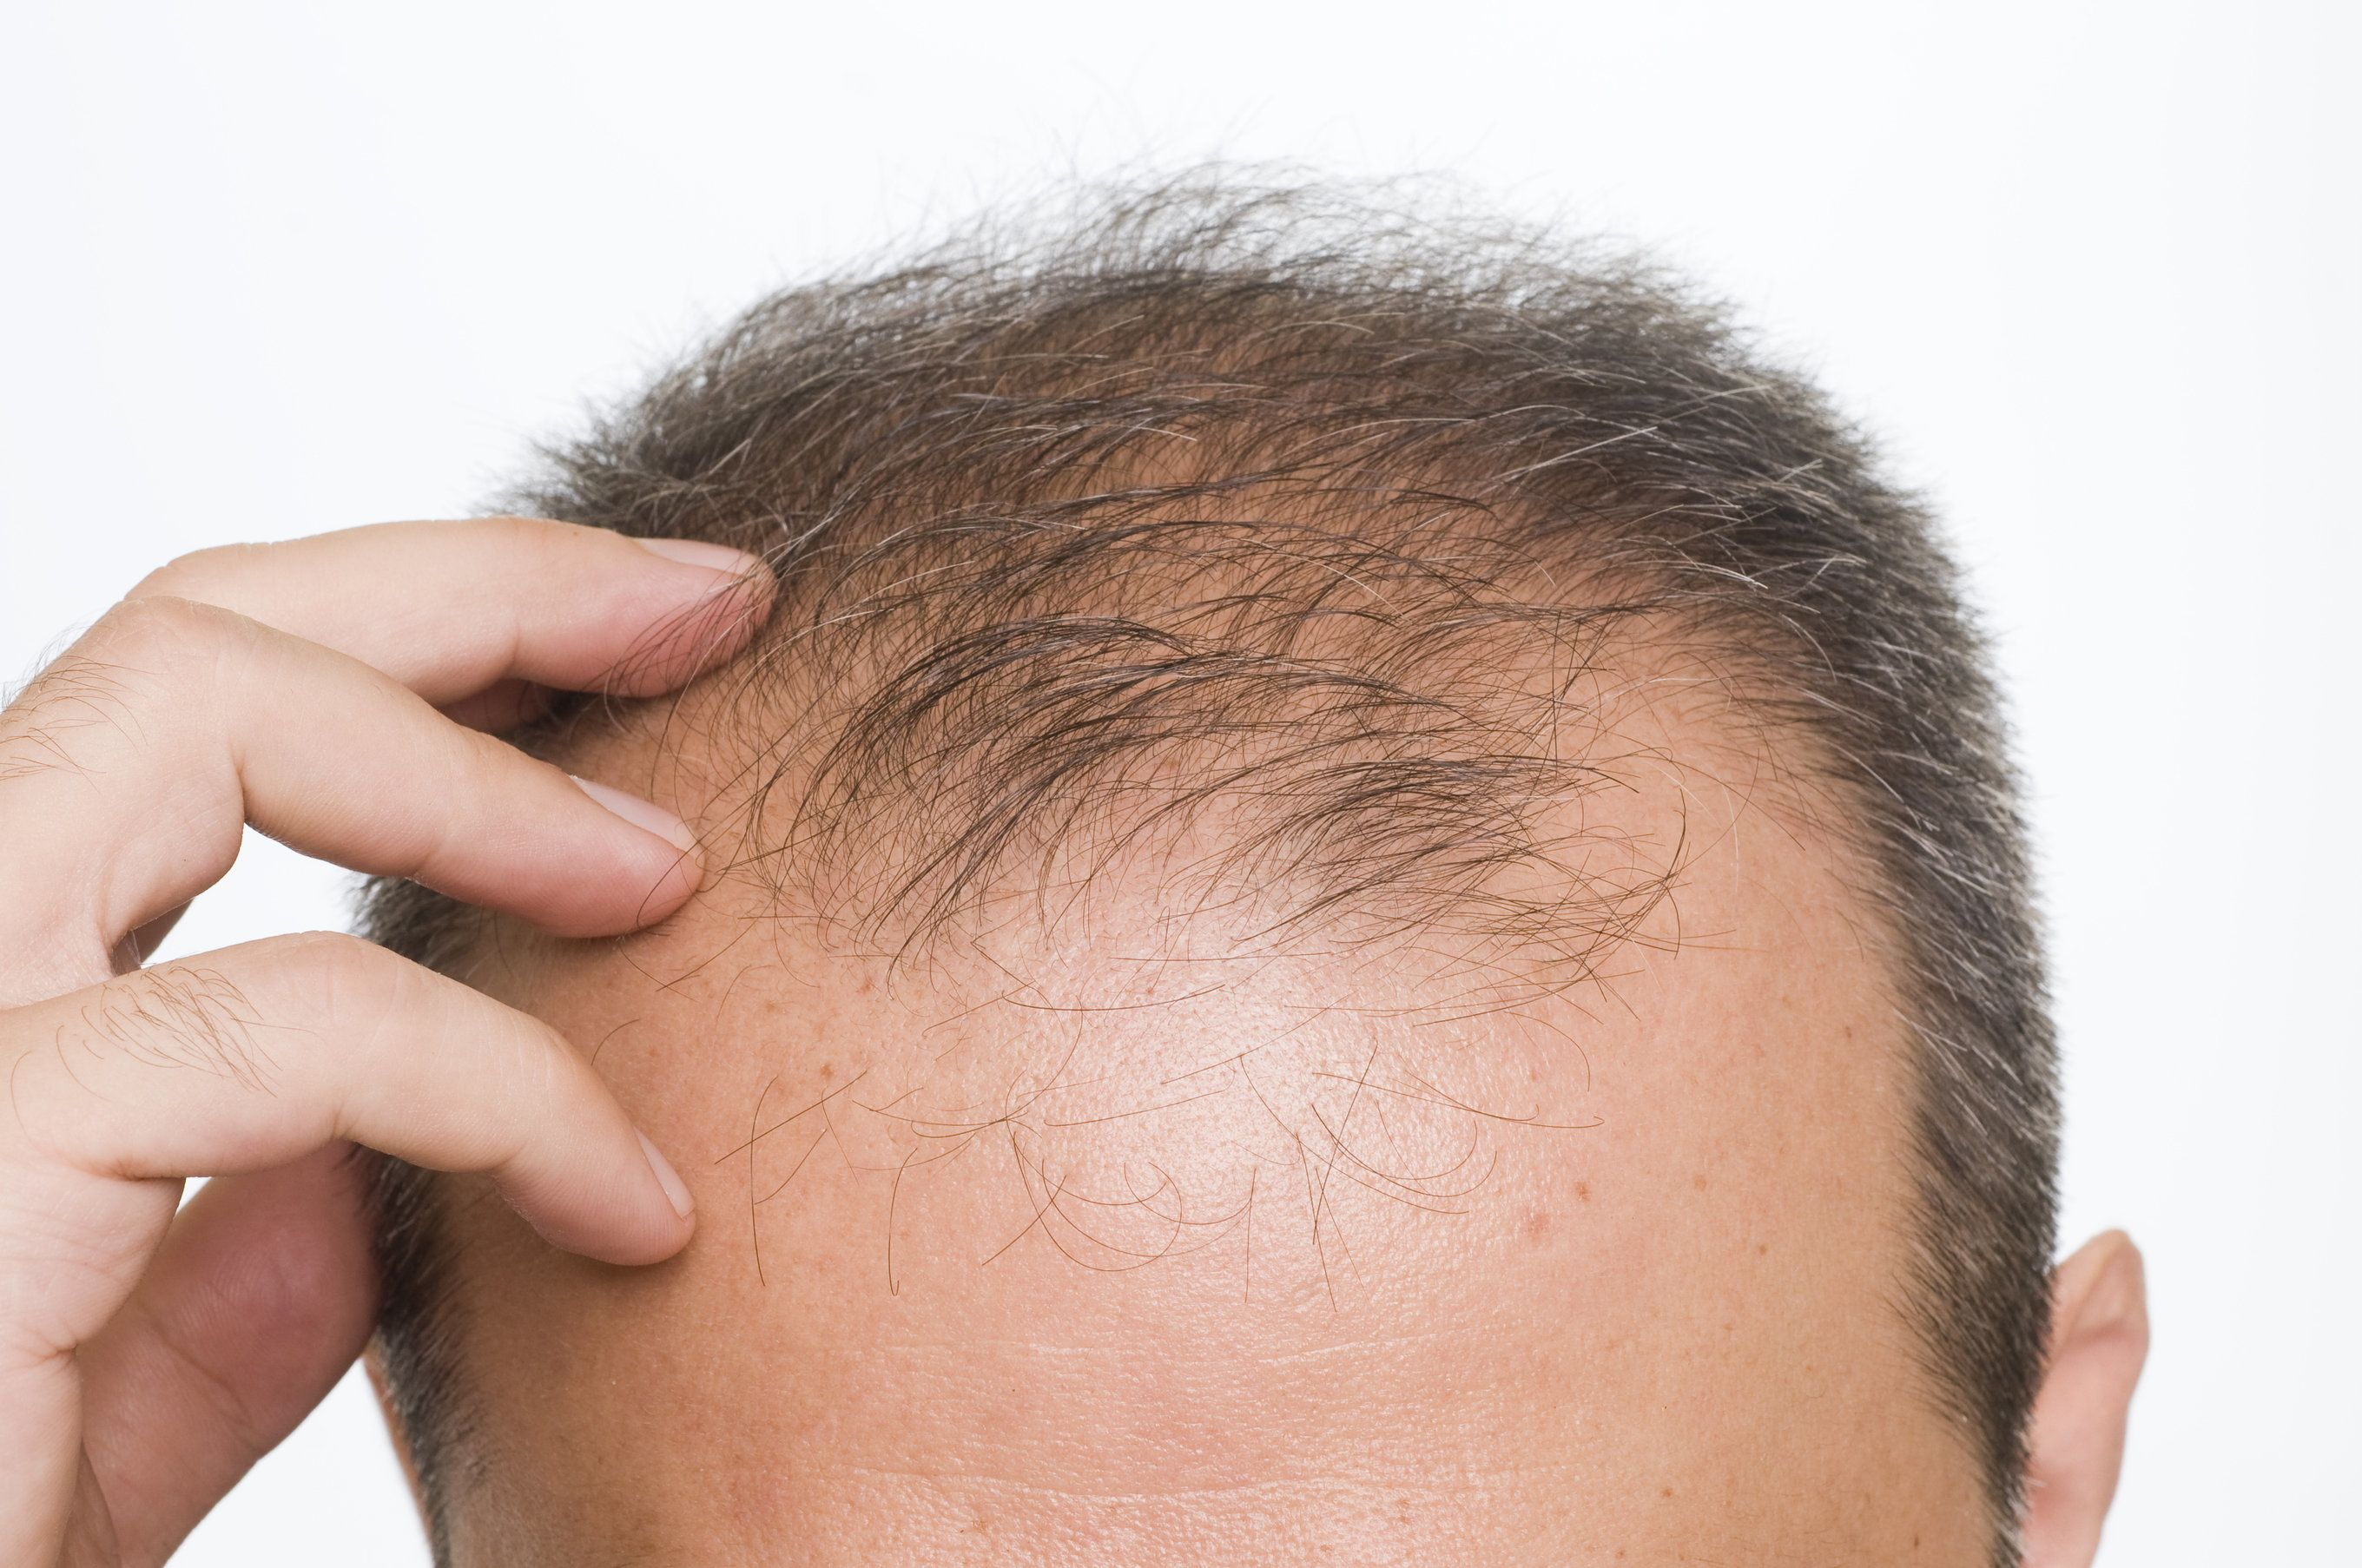 Thinning hair on the scalp